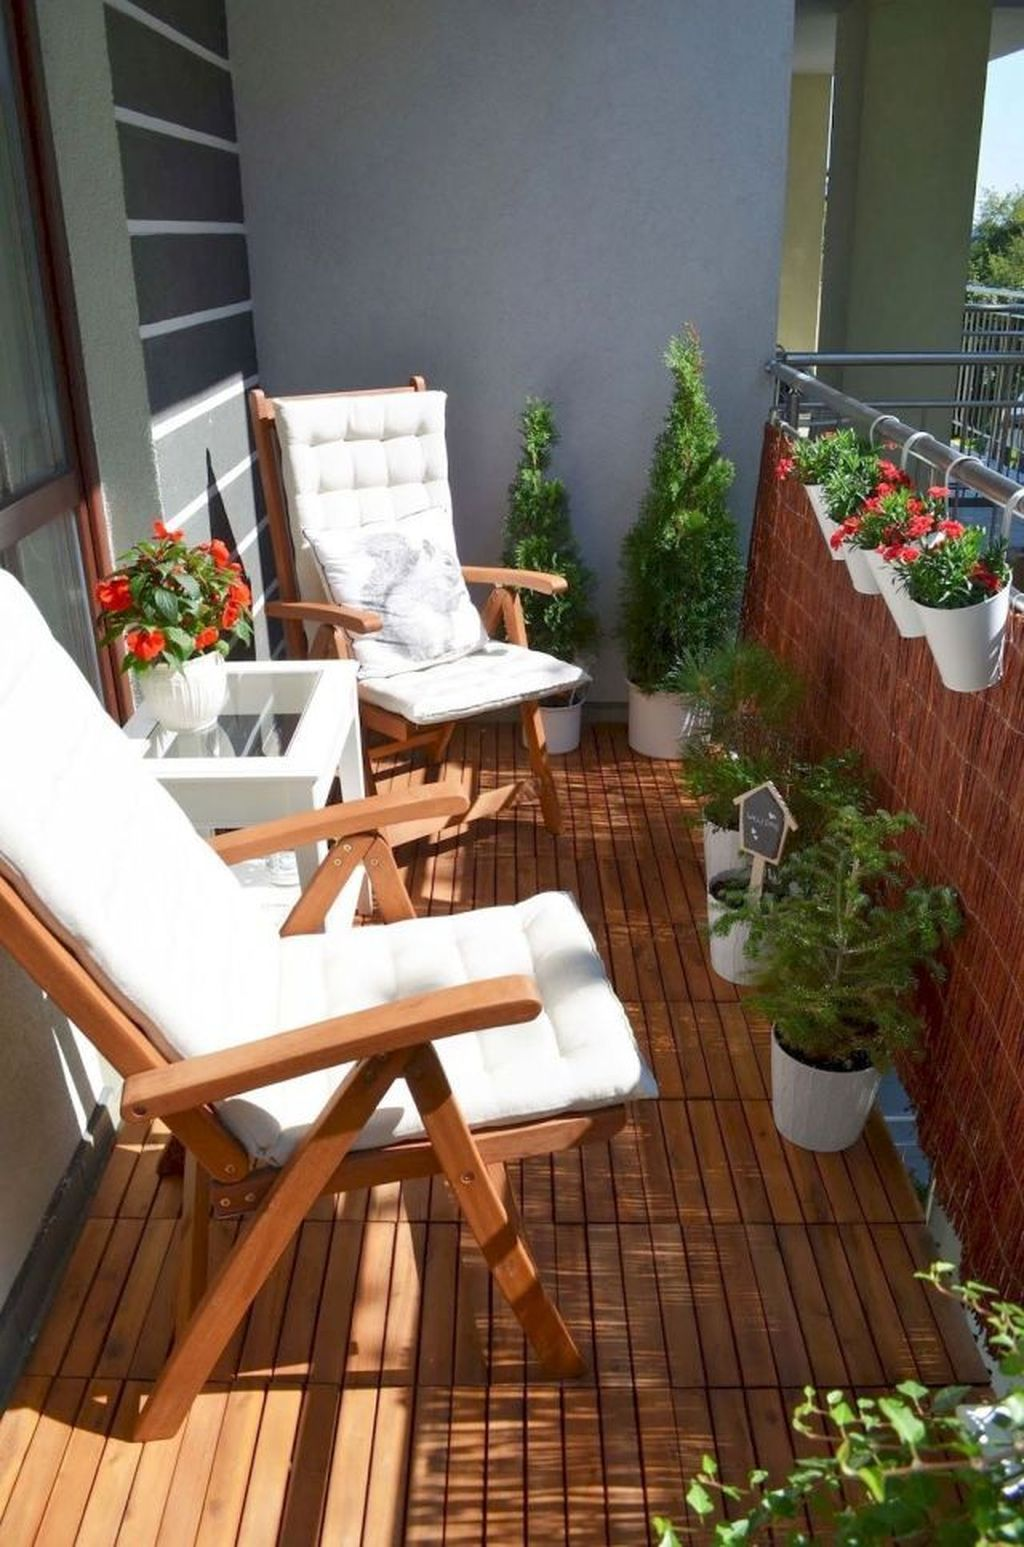 Stunning Apartment Garden Design Ideas 16